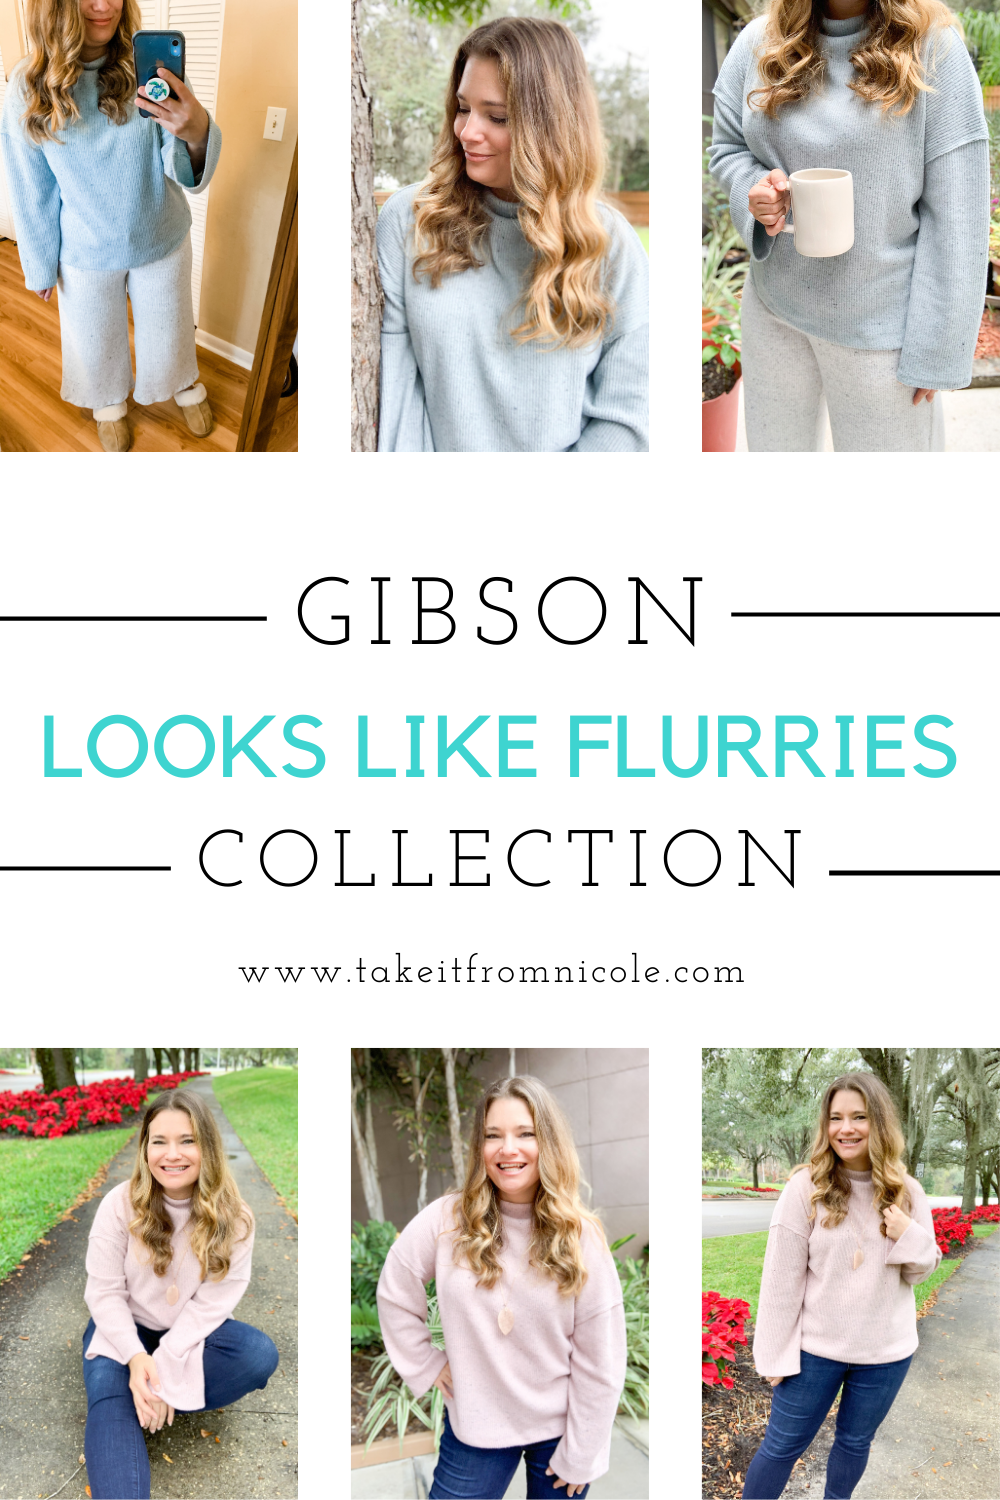 The Gibson Looks Like Flurries collection is the perfect cozy loungewear we need this winter! Soft sweaters, pants, and shorts that pair perfectly with fluffy slippers or mix with your favorite jeans for a cozy out and about look. Midsize, curvy blogger outfits.